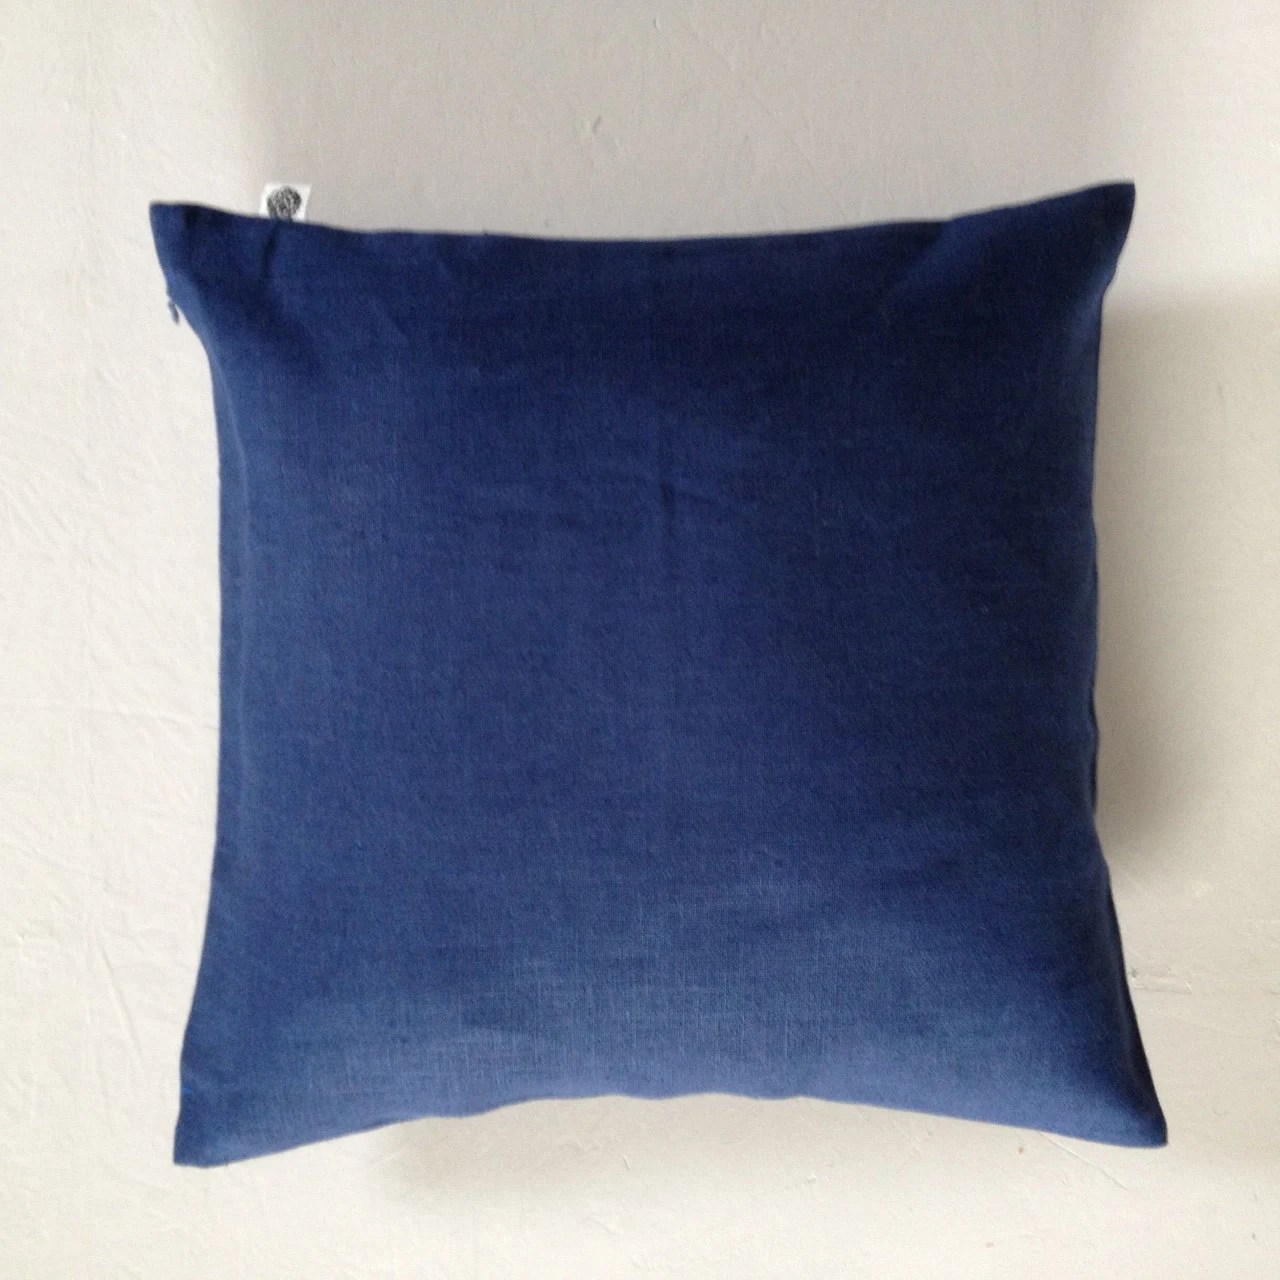 Royal blue pillow cover decorative pillow cover cushion